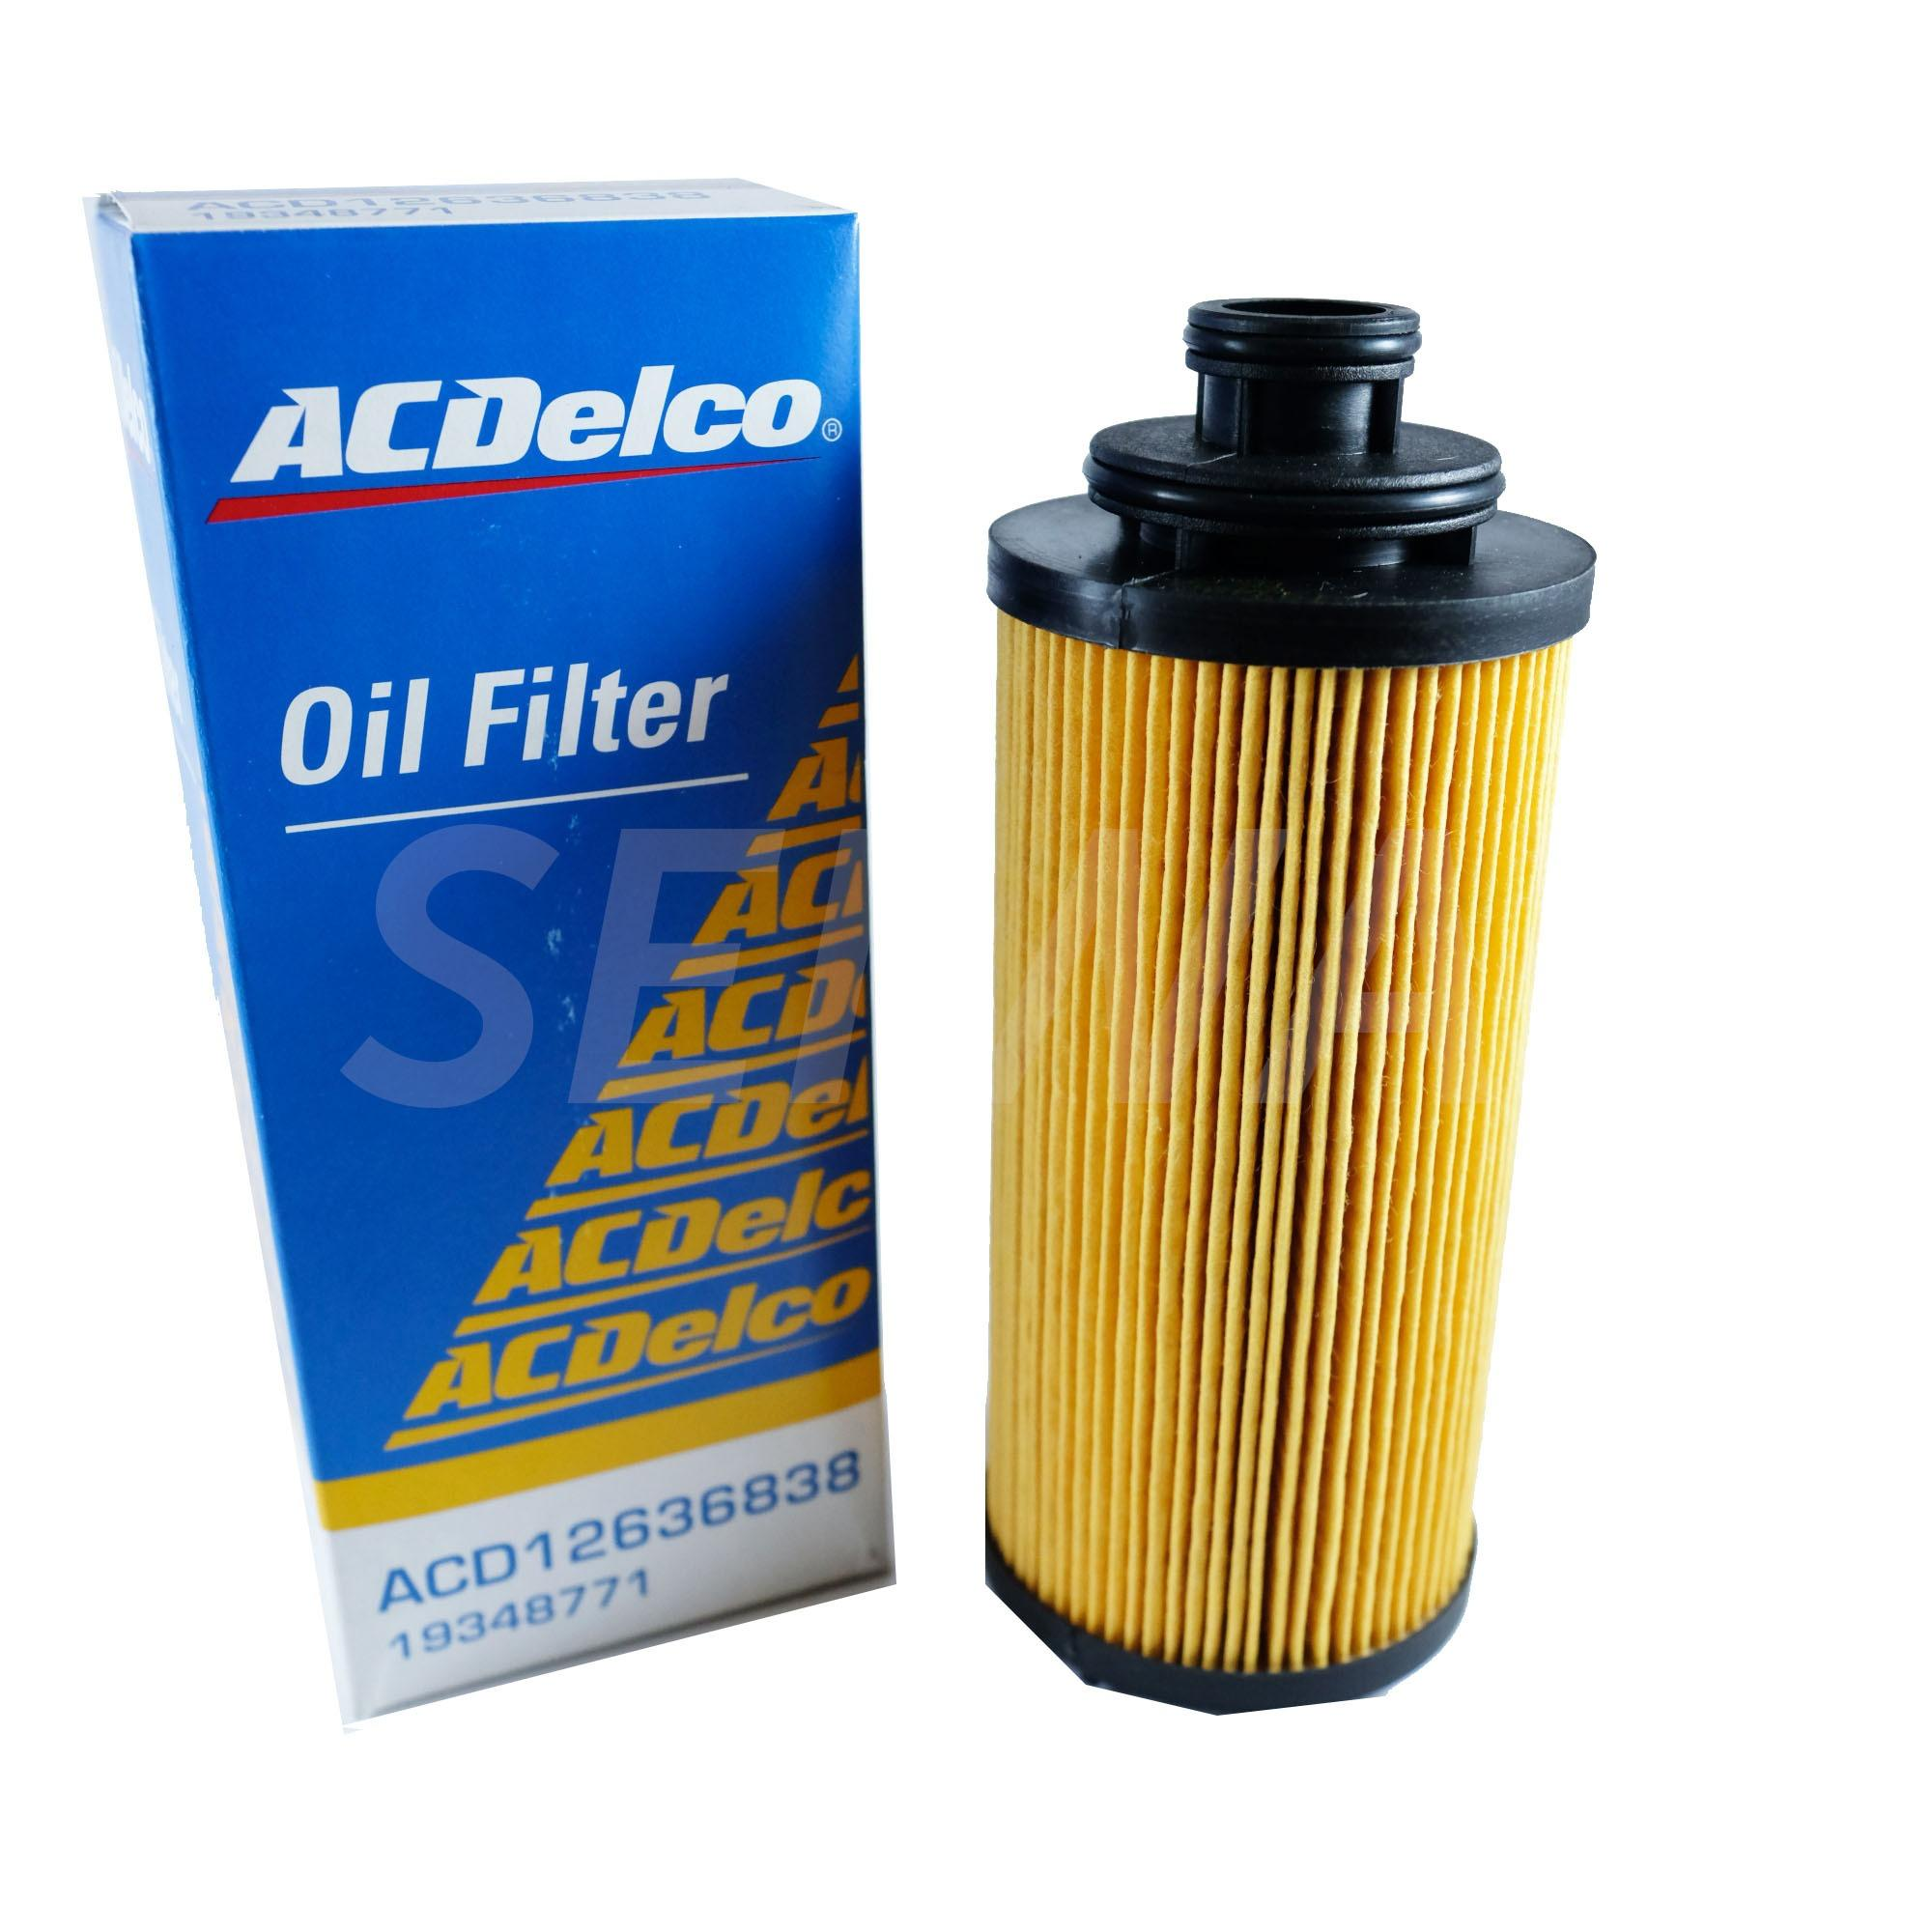 Oil Filter For Sale Adapter Online Brands Prices 2010 Ford F 150 Fuel Wrench Genuine Chevrolet Auto Parts 12636838 Trailblazer And Colorado